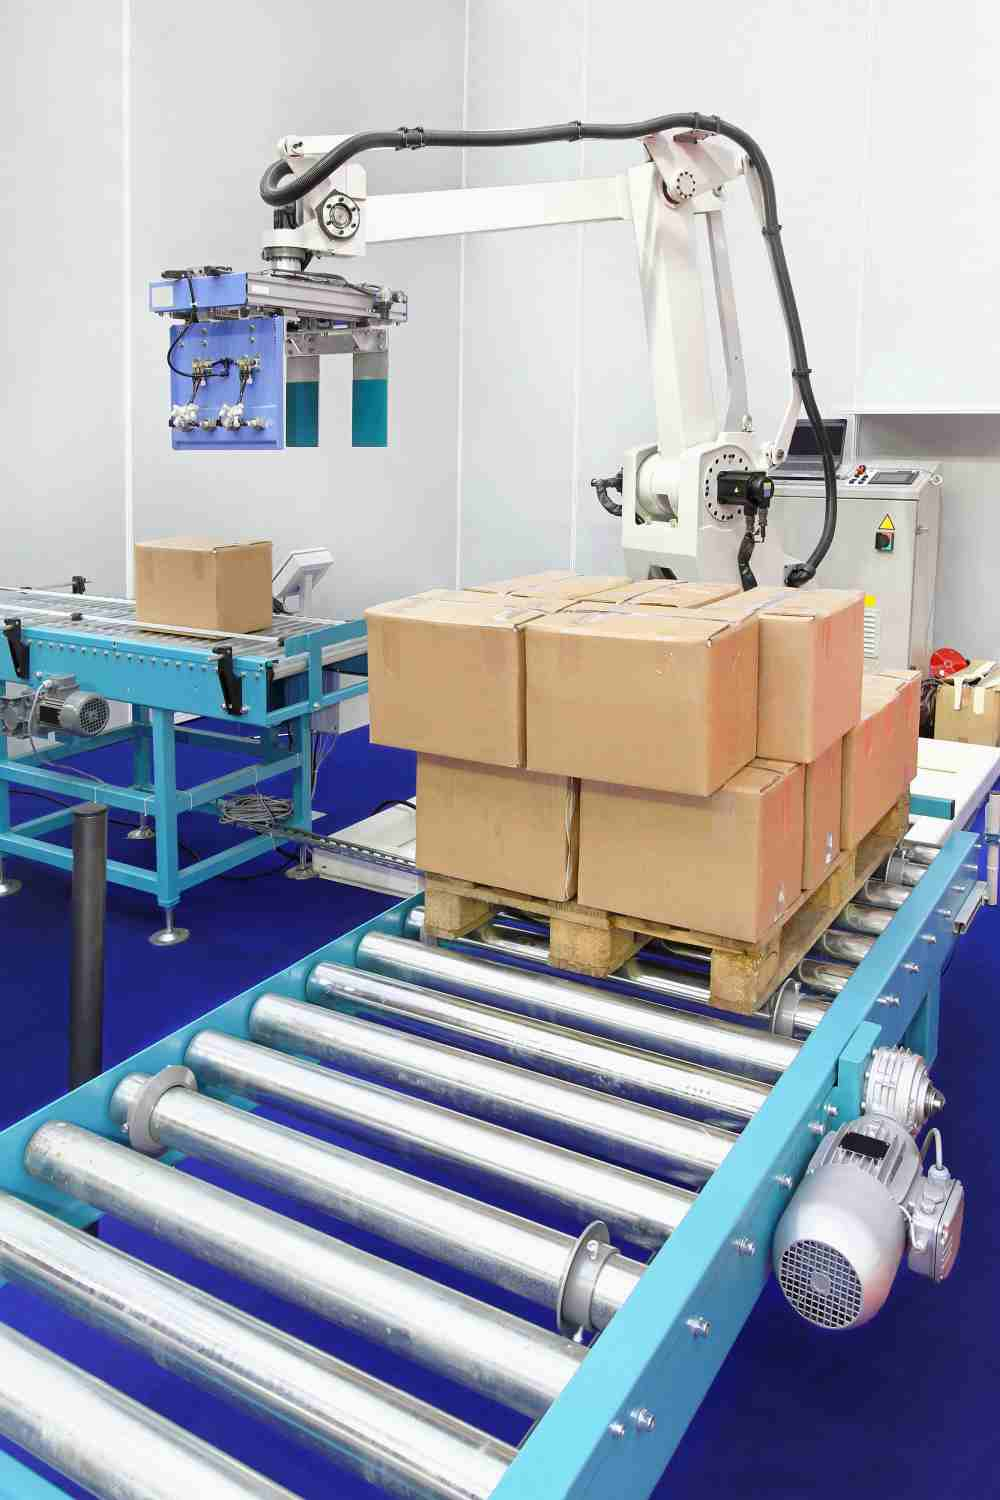 Read more about the article Palletizing equipment offers case and pattern flexibility